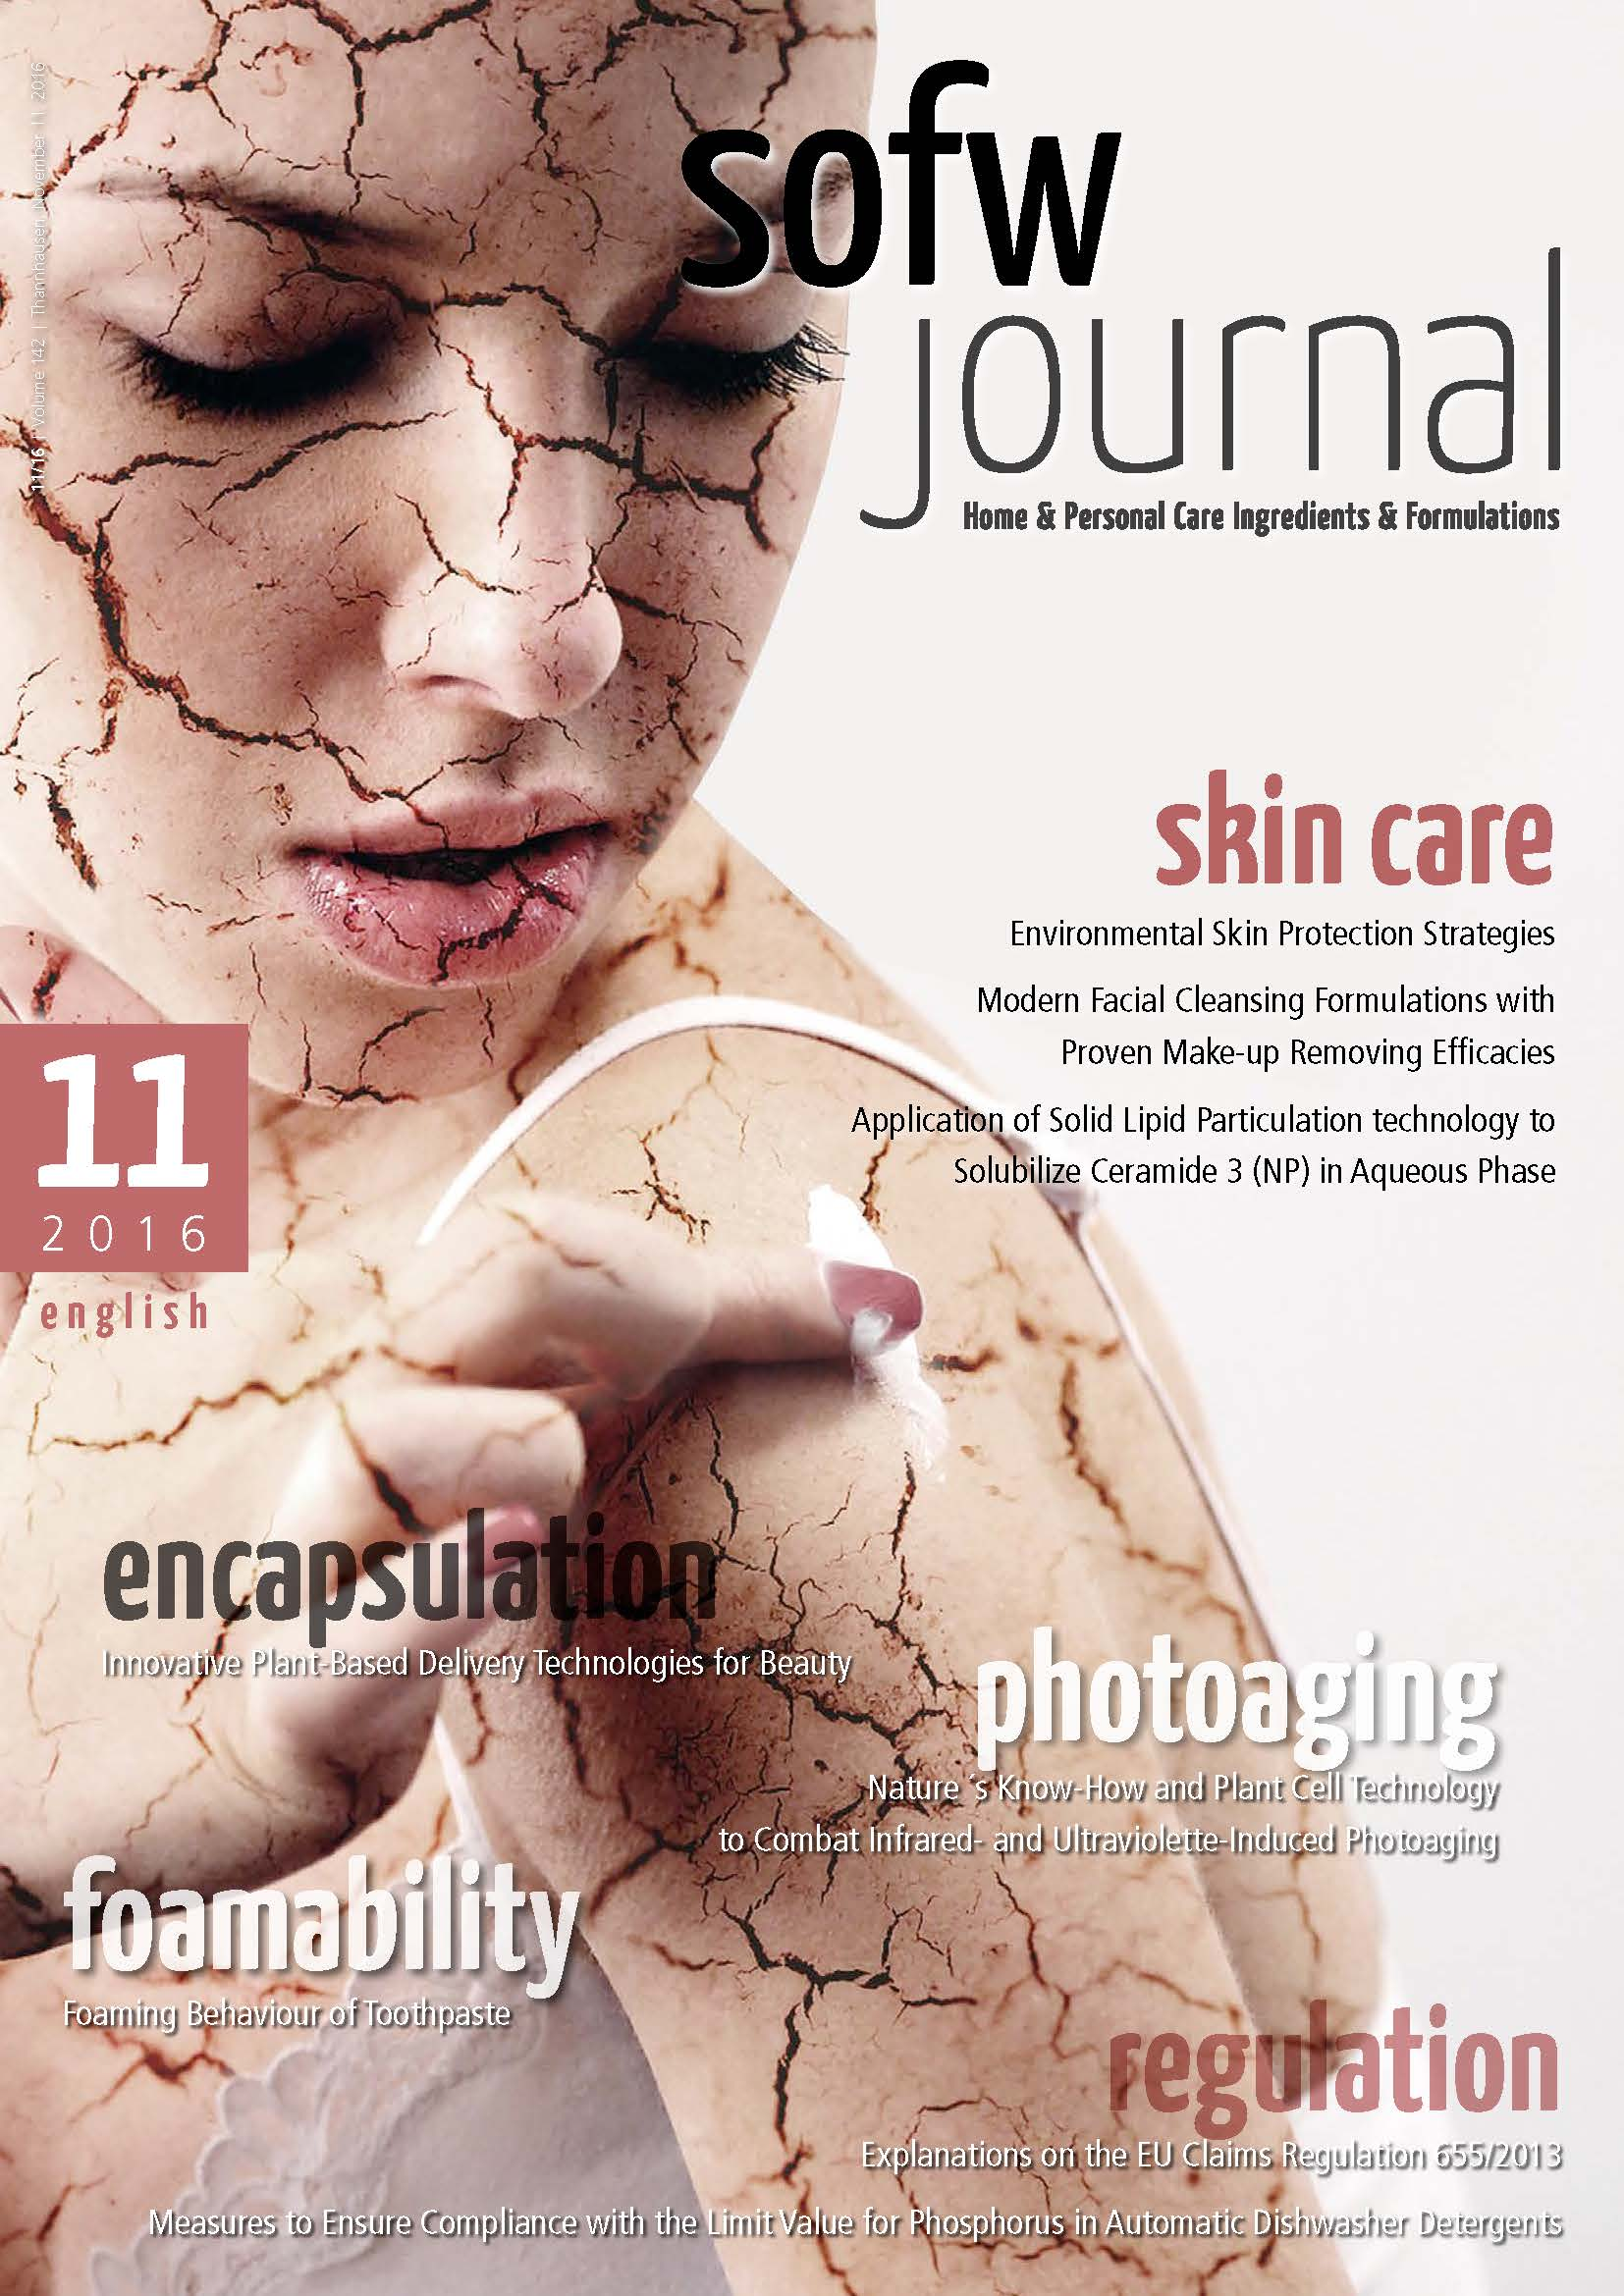 sofwjournal_en_2016_11_cover